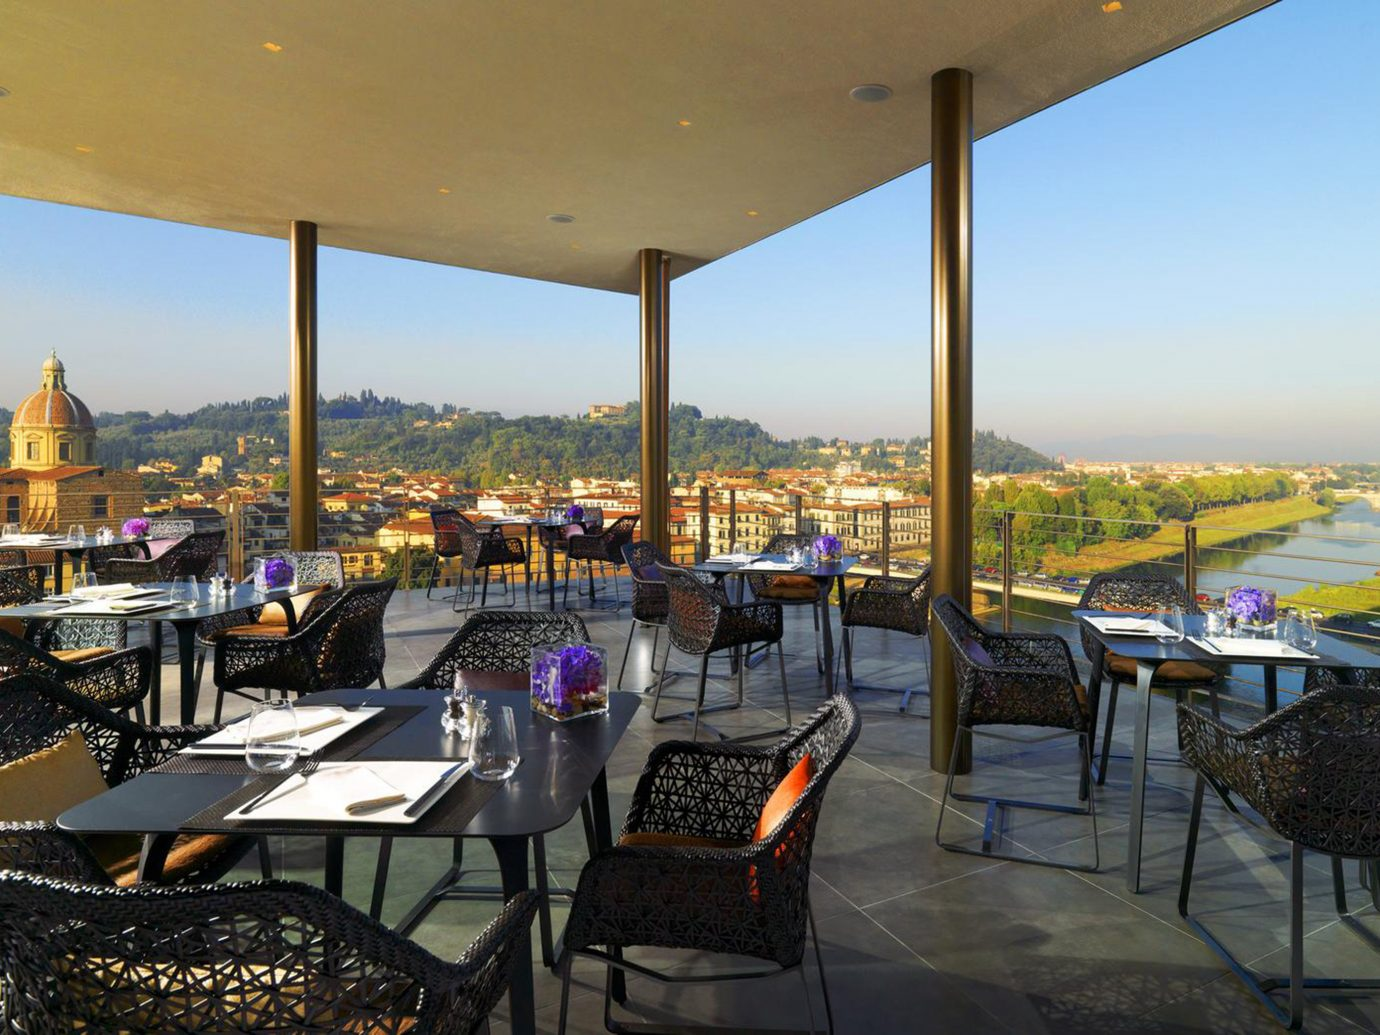 Deck Dining Florence Hotels Italy sky chair outdoor restaurant vacation estate Resort overlooking set several day